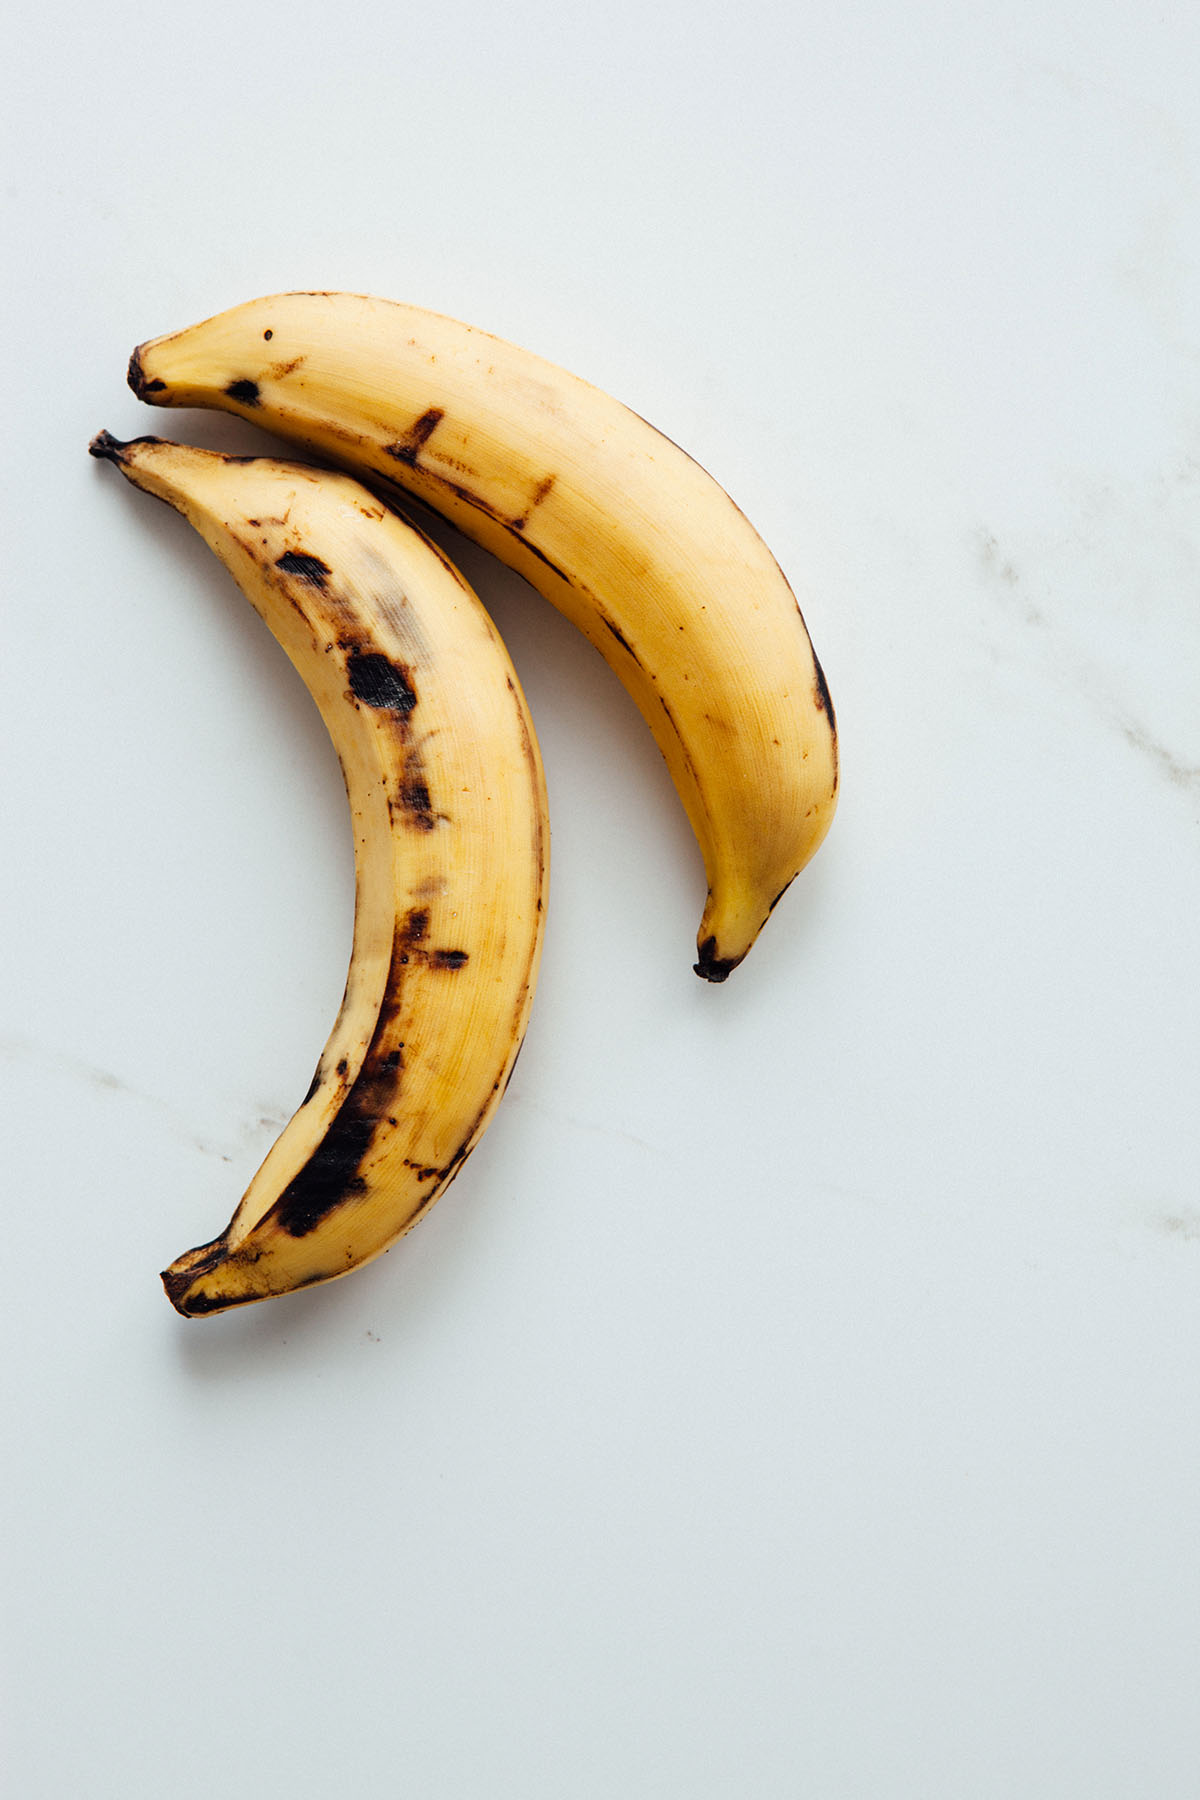 Two plaintains laying on a marble surface.